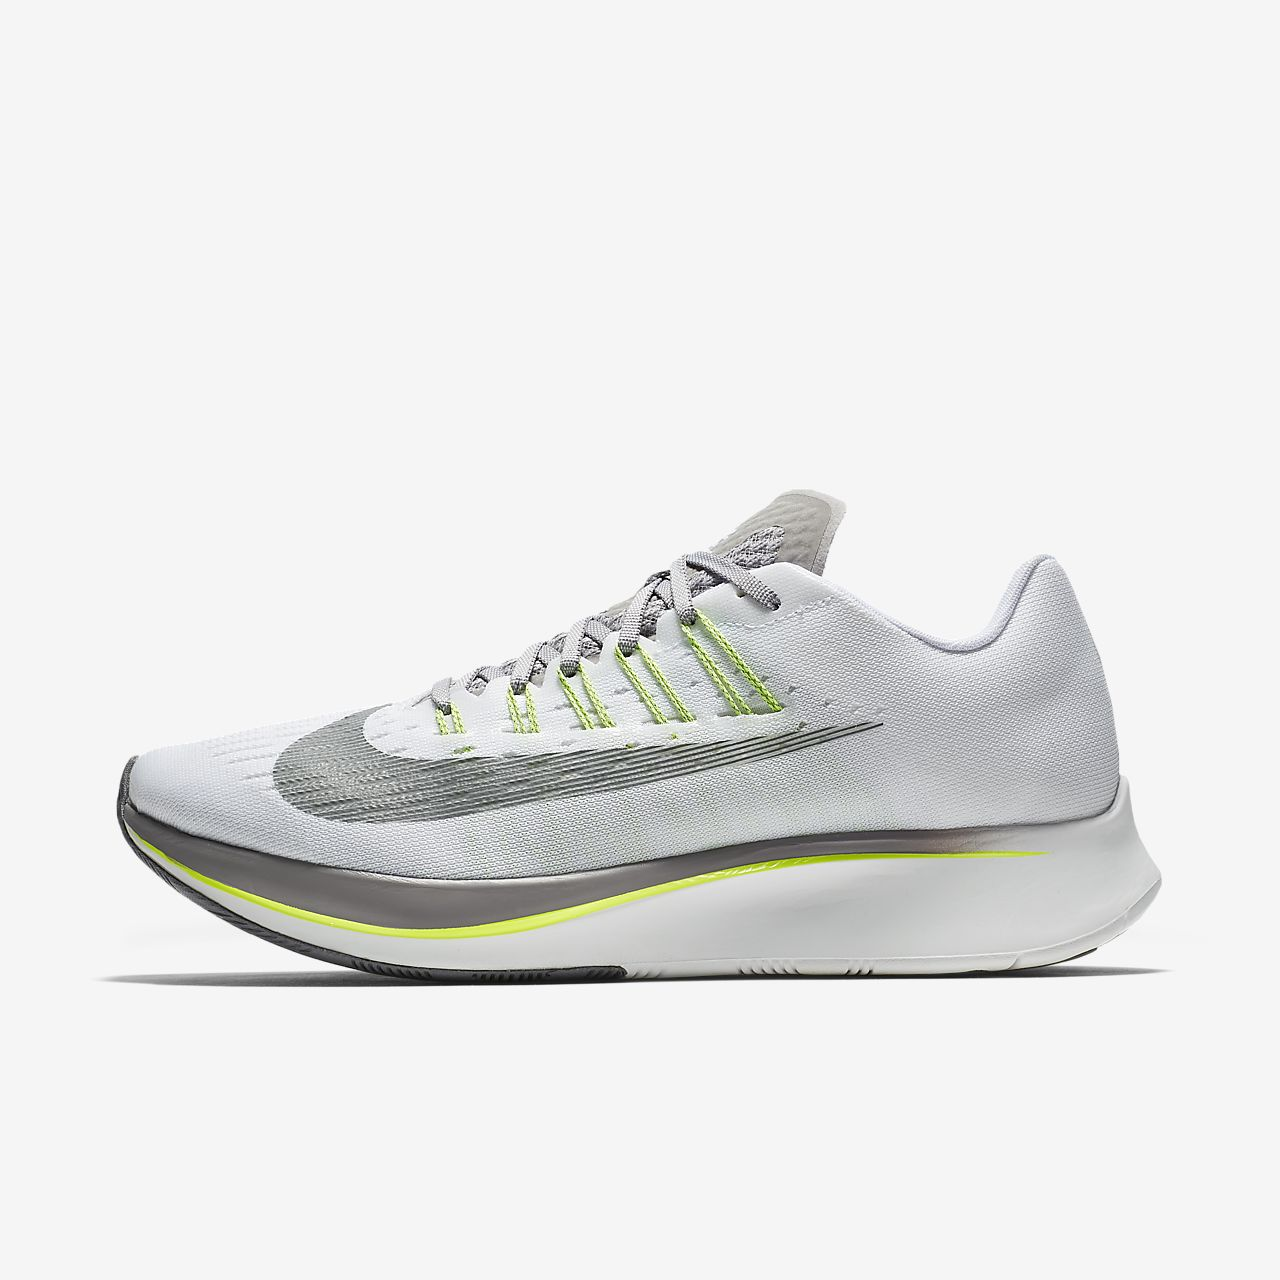 2e837bdb3e1 Nike Zoom Fly Men s Running Shoe. Nike.com